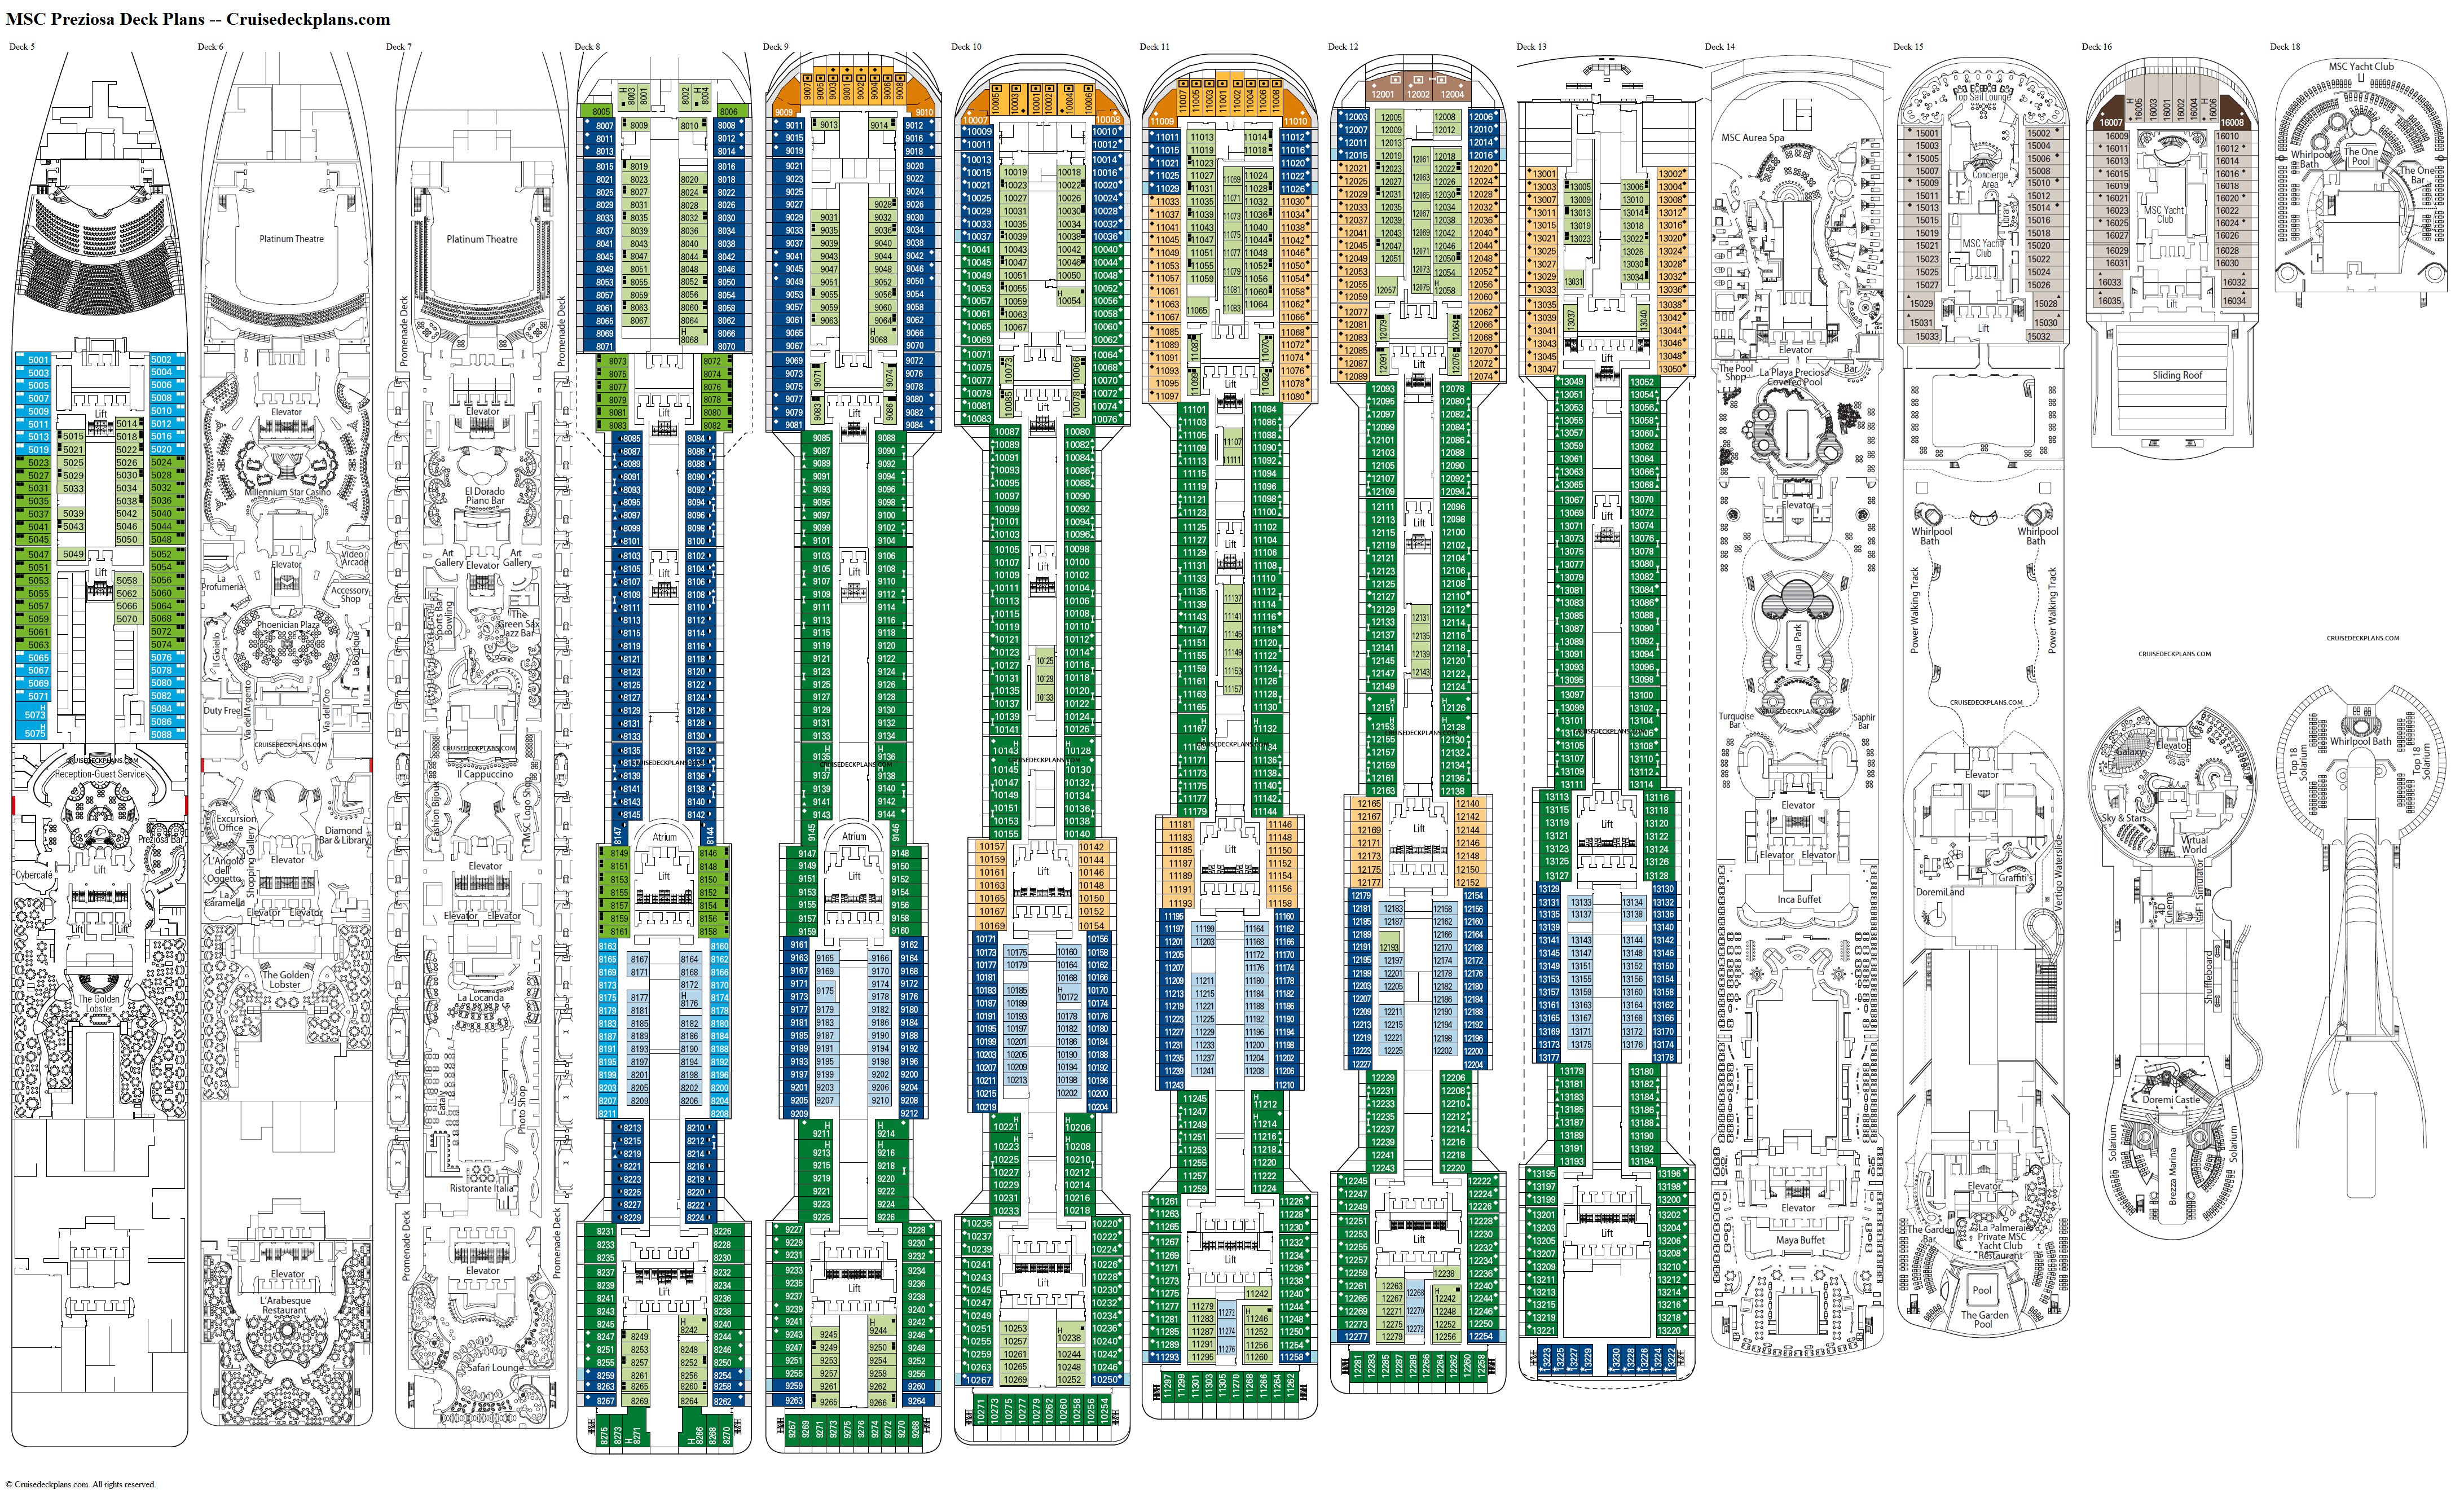 MSC Preziosa deck plans image